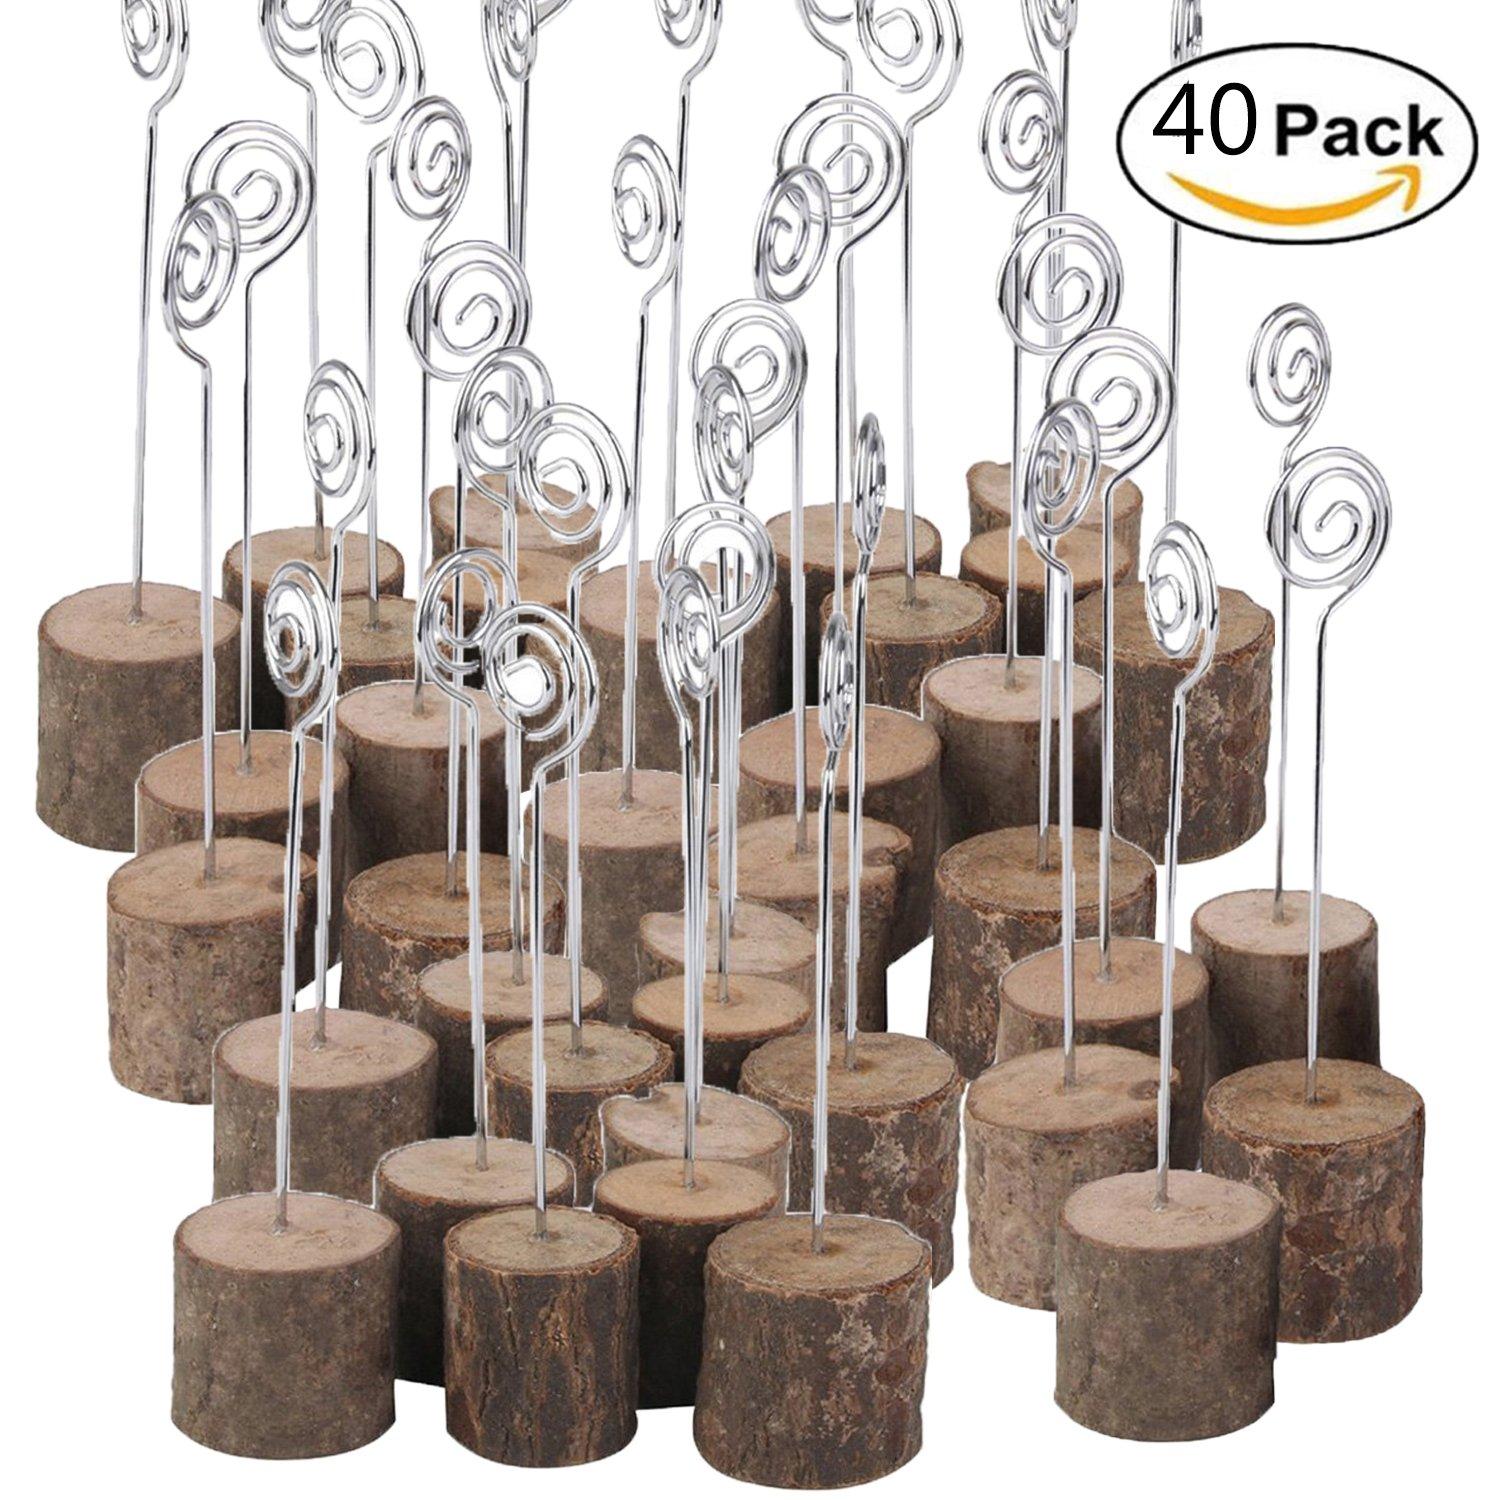 ECHI Wedding Table Card Holder, Real Wooden Base Photo Holder - Suit for Photo, Picture, Memo, Card, Business Card Clip (40PCS)